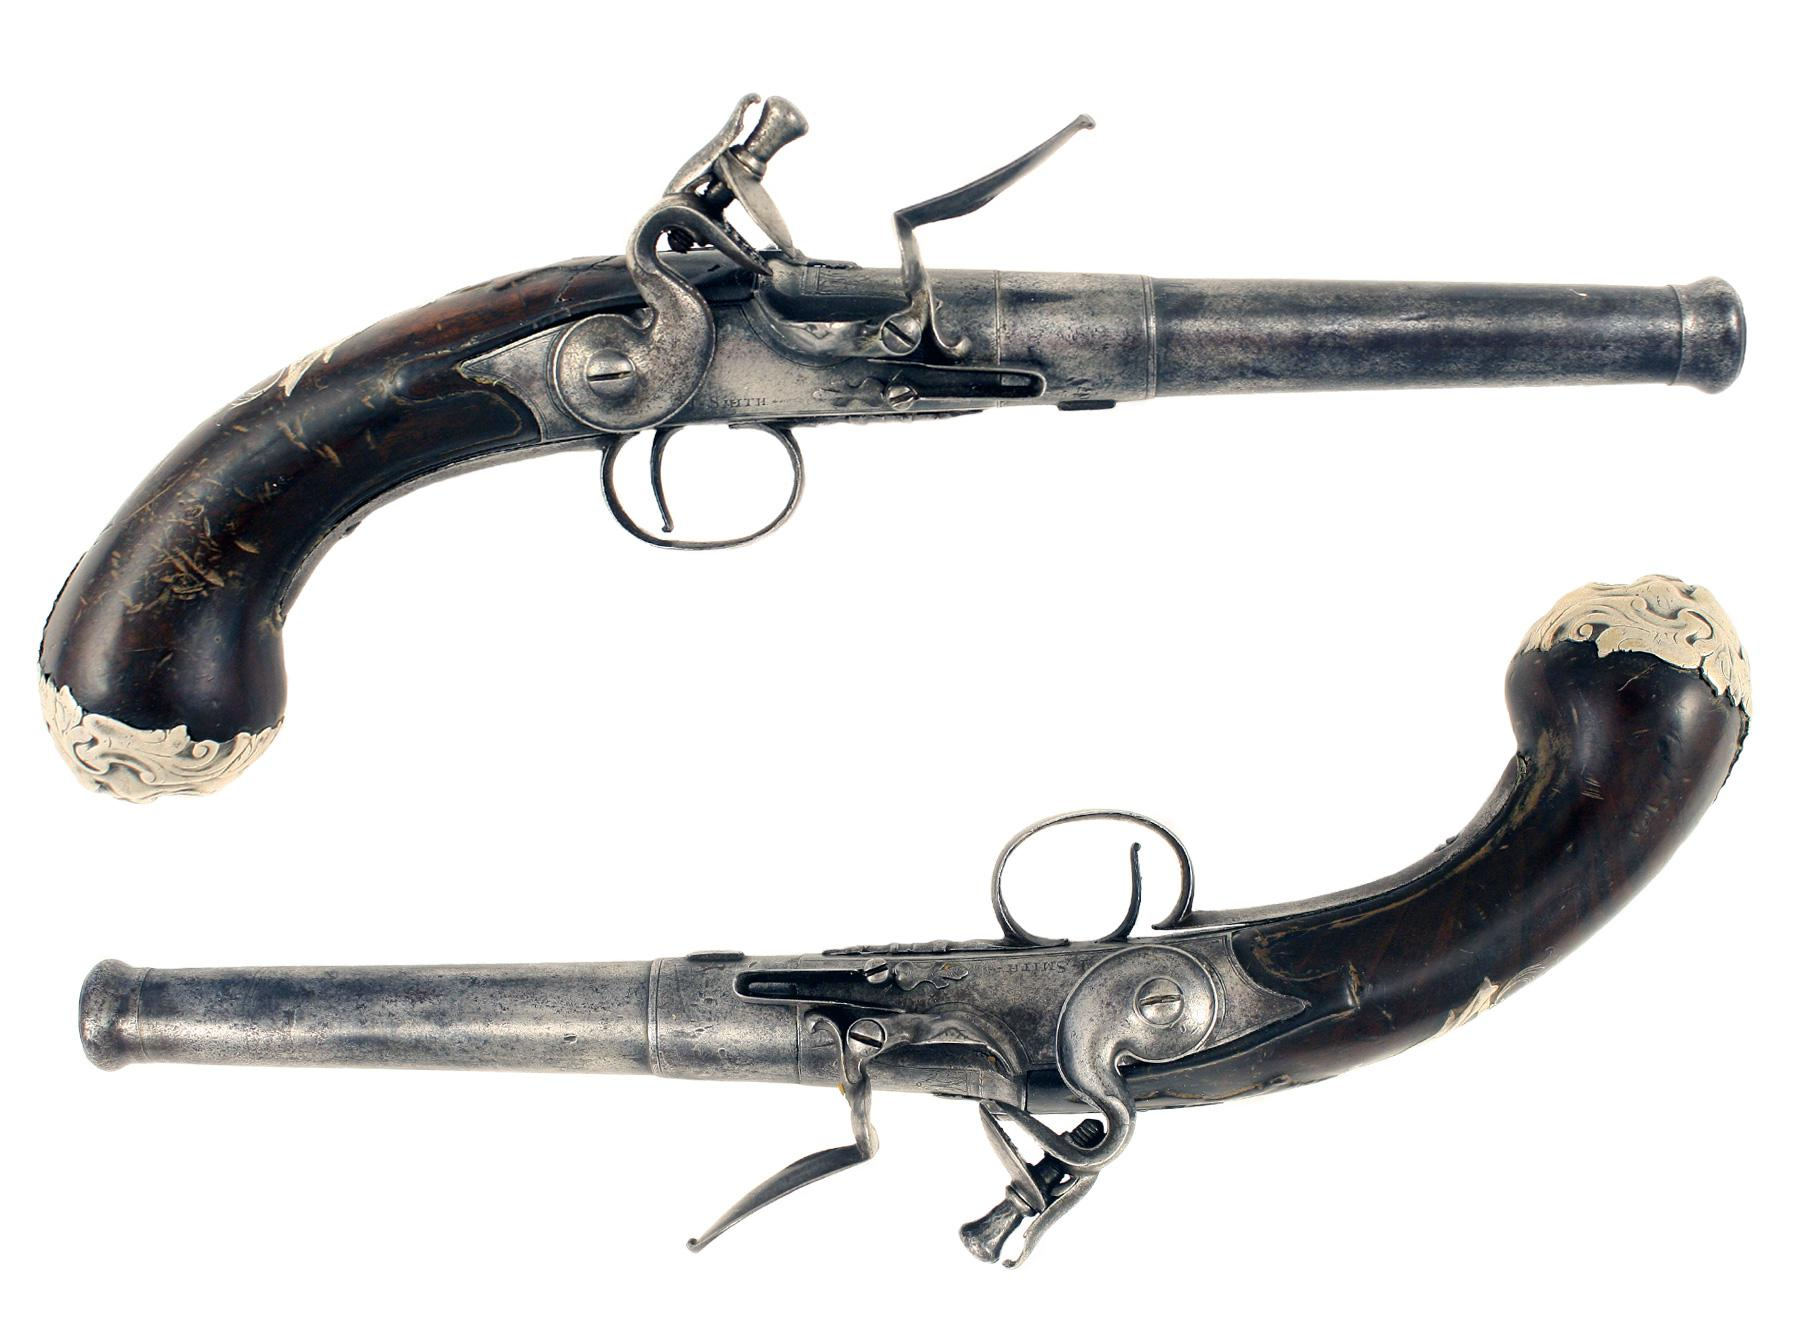 A Pair of Queen Anne Pistols